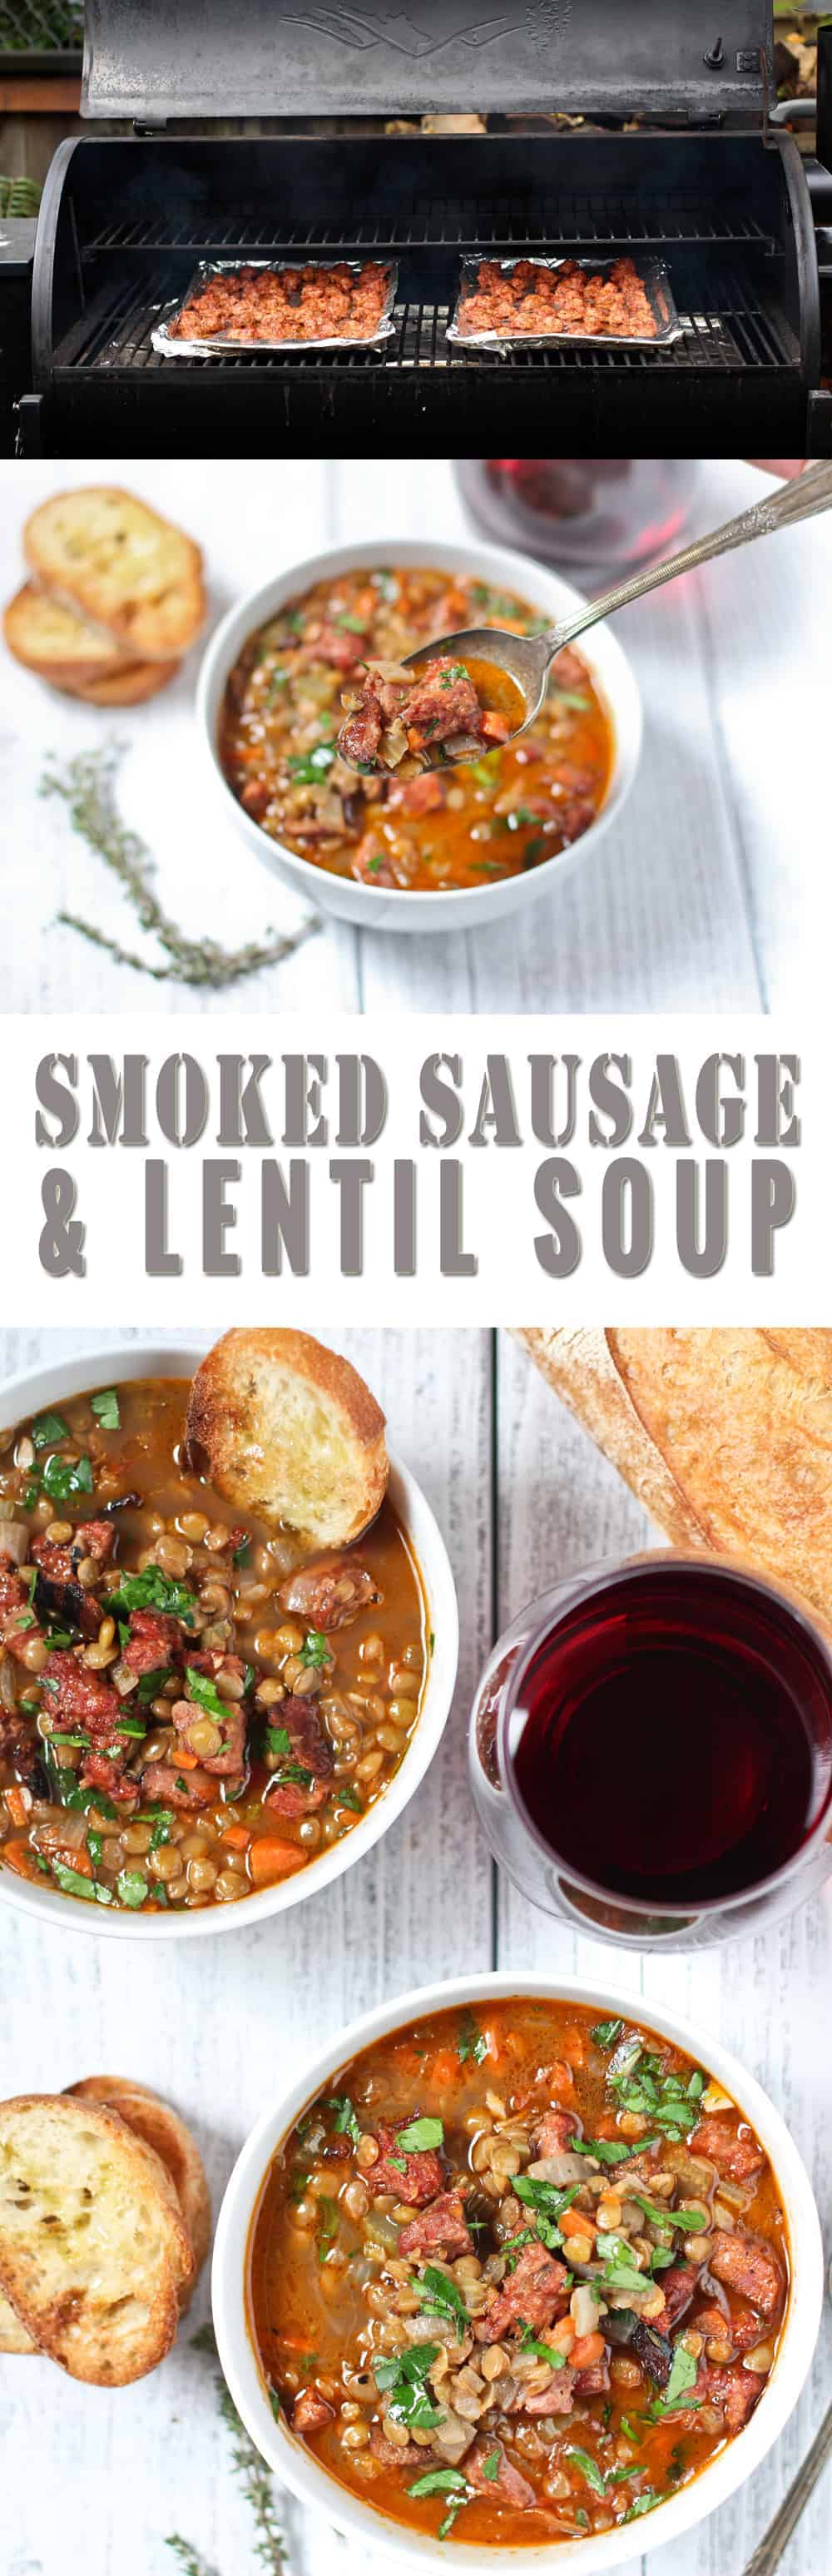 Smoked Sausage and Lentil Soup. A smoky, savory, hearty (and easy!), soup perfect for cold nights. We've made this for over 500 people at catering events and it's a hit!! Easy and devious. What more could you want?! Bonus: It also comes with wine pairing!!